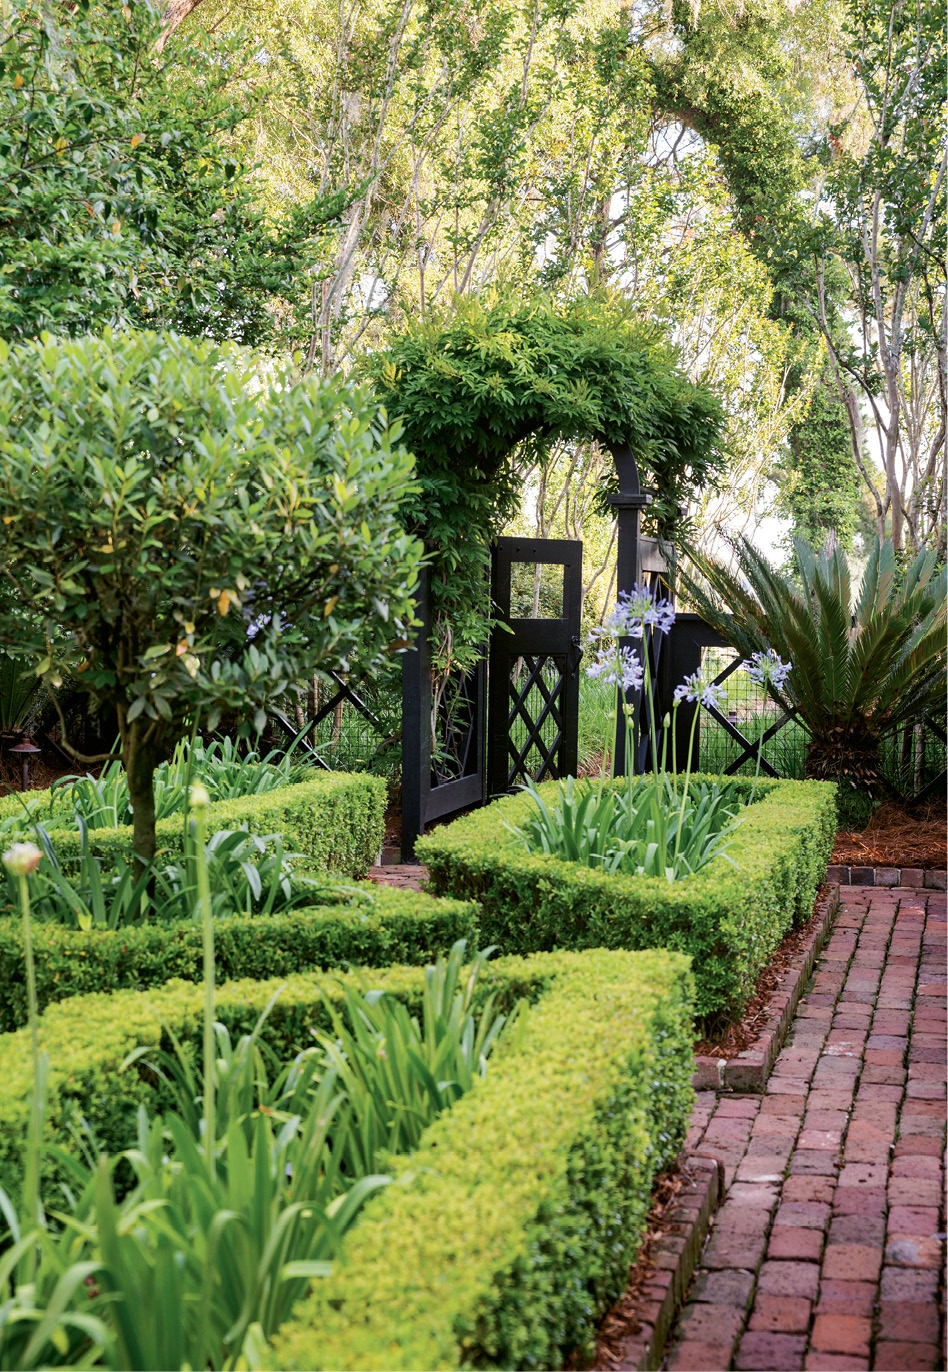 River Walk: A gateway offers an invitation toward the Wappoo through a formal allée edged by crape myrtles and old Charleston brick.